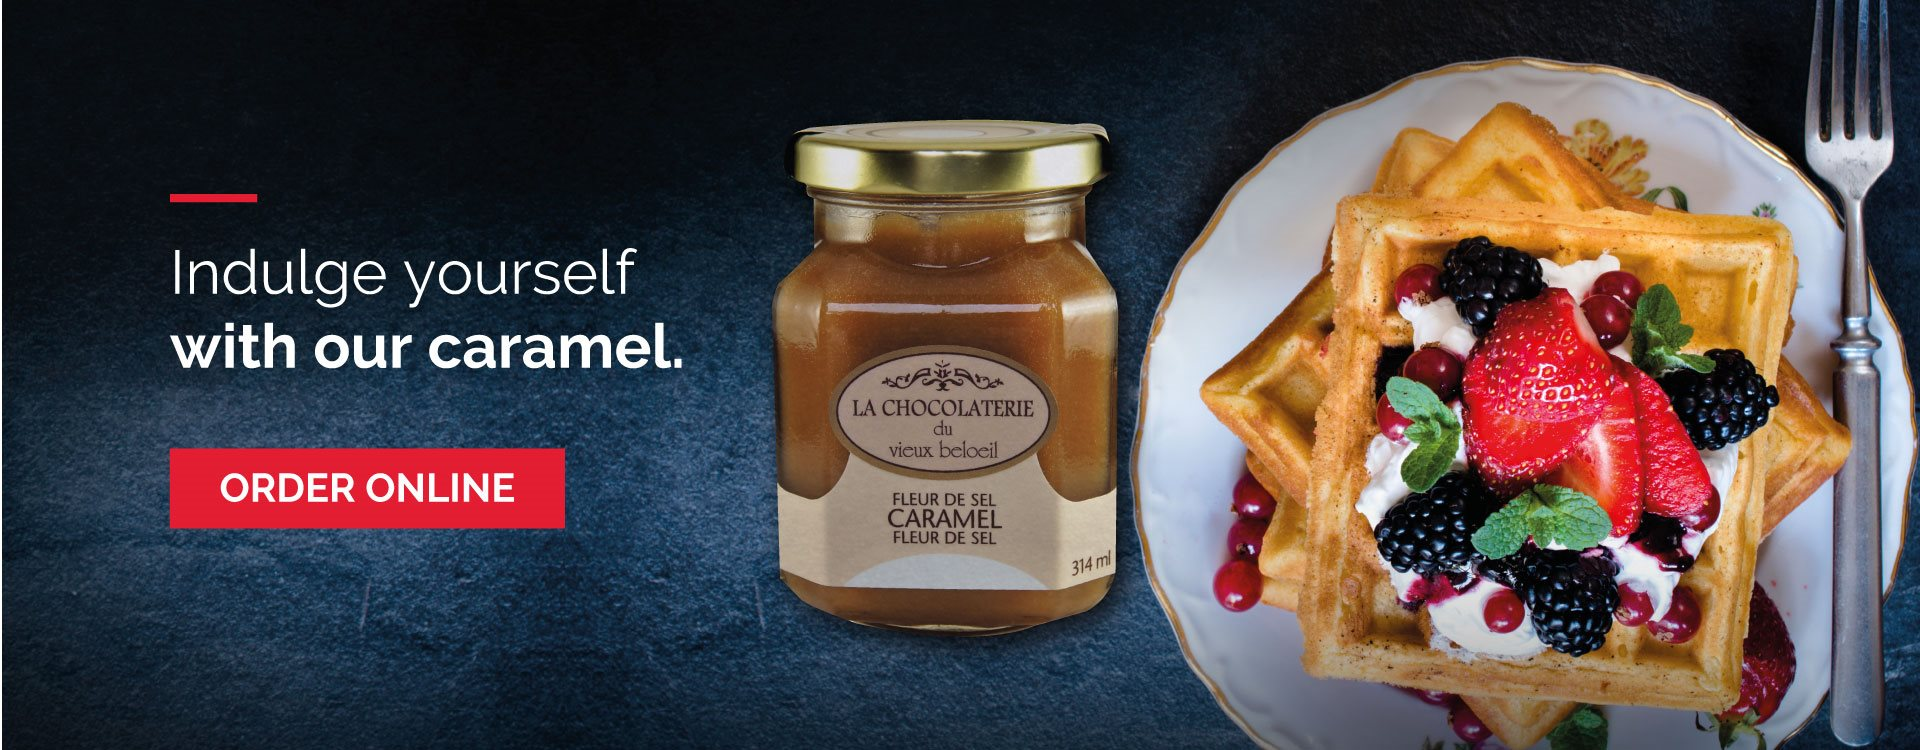 Indulge yourself with our caramel